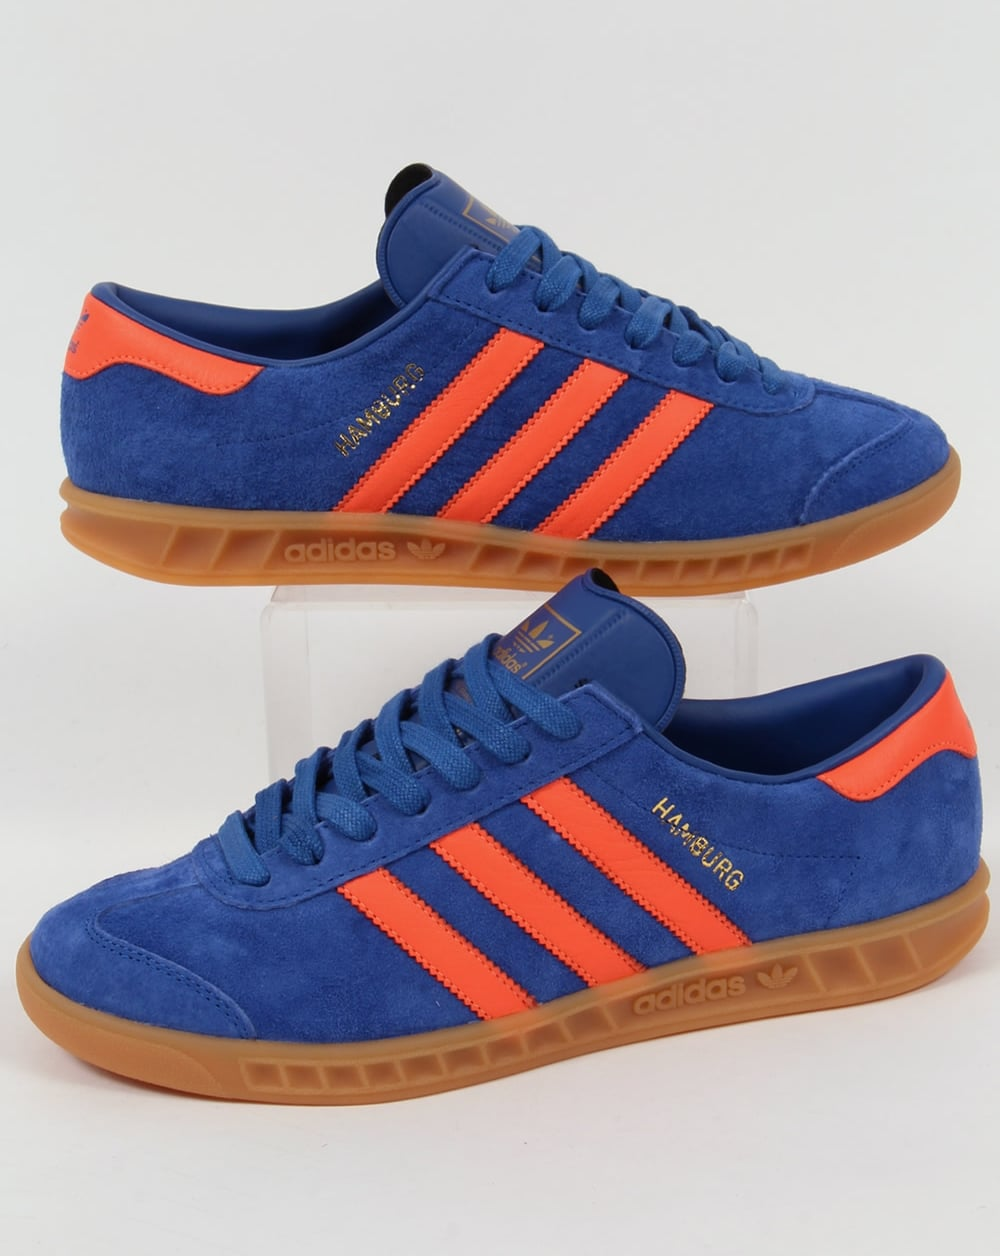 Adidas Gazelle Trainers Blue And Orange